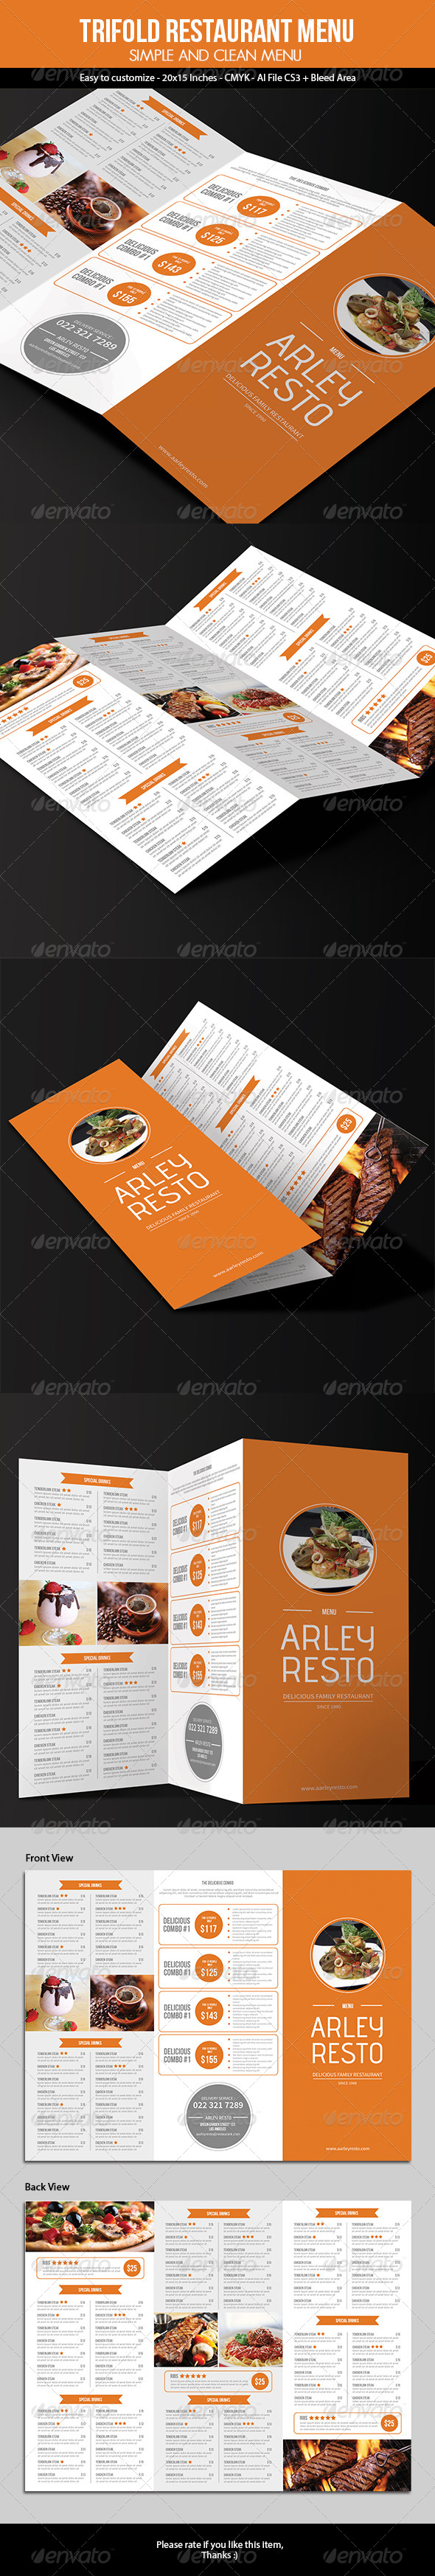 Trifold Simple Restaurant Menu